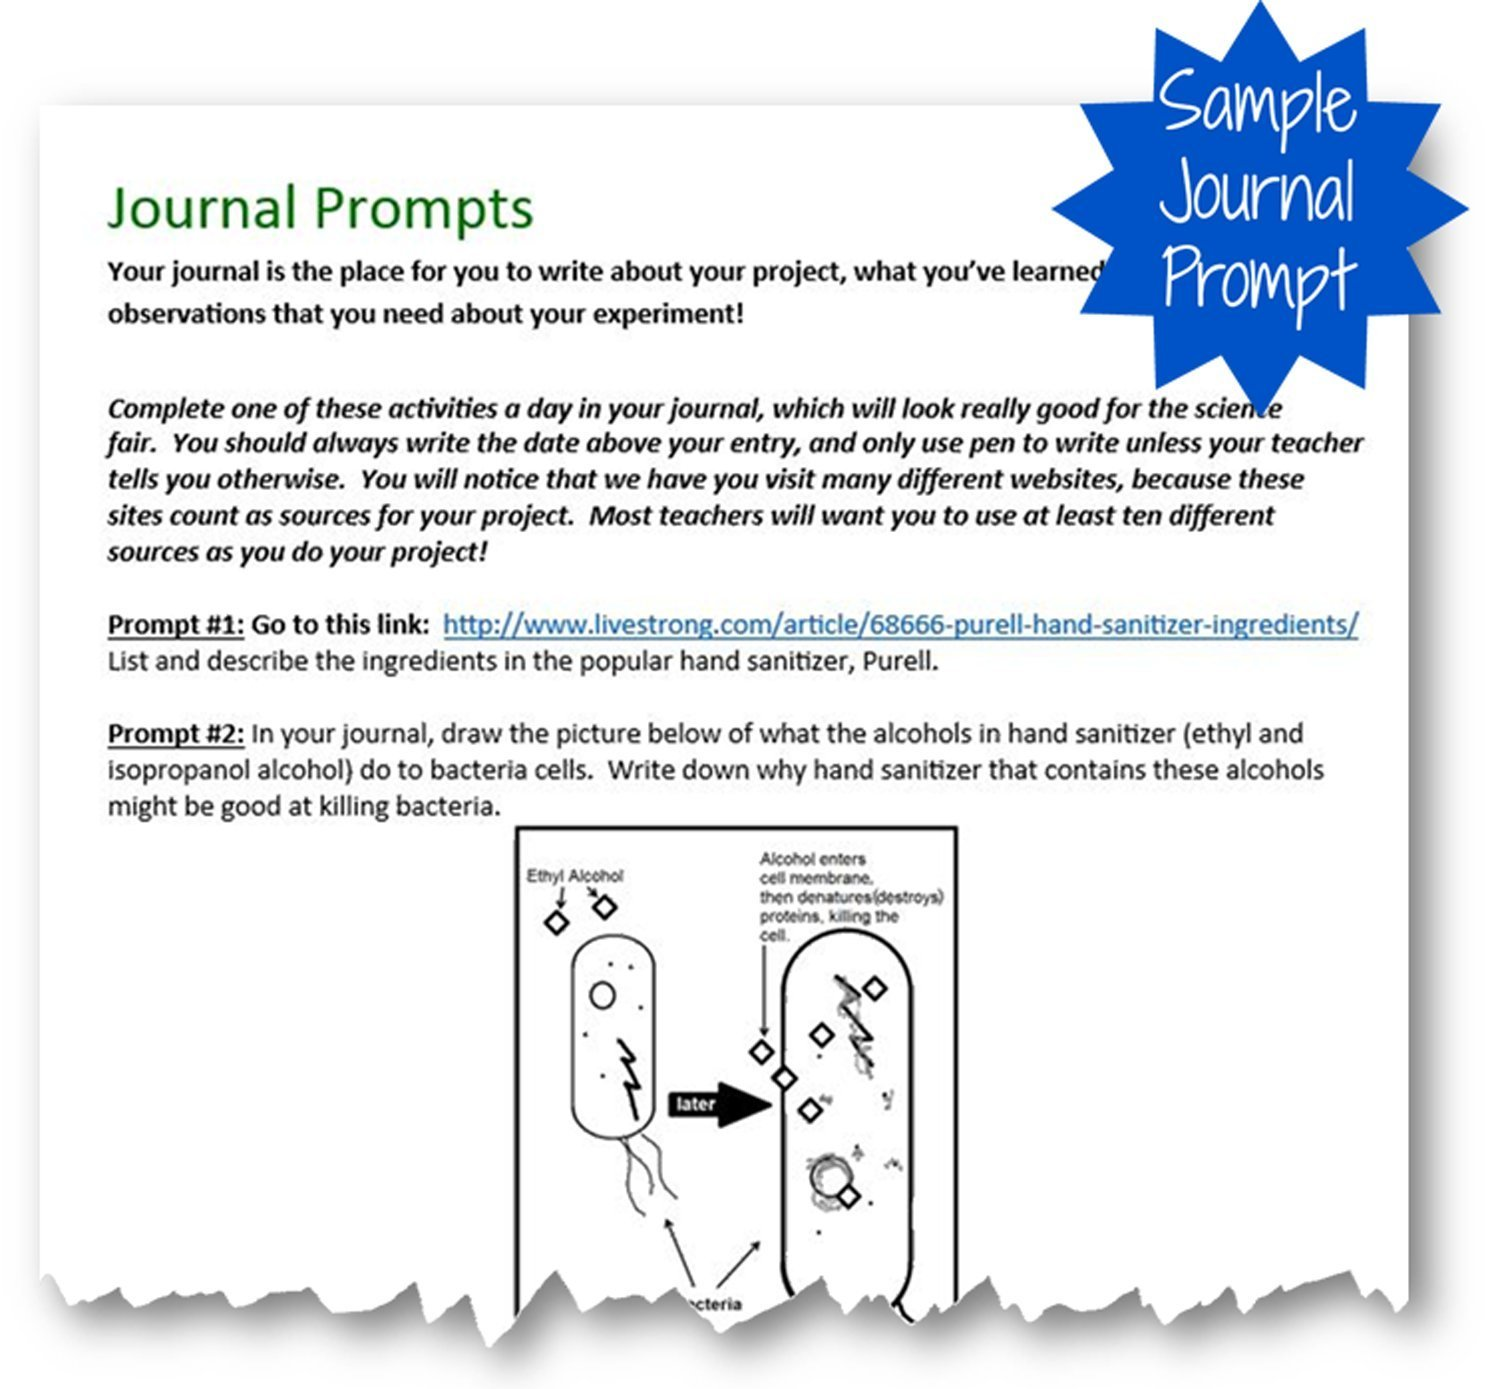 Sanitizers and Bacteria Science Fair Project Kit Journal